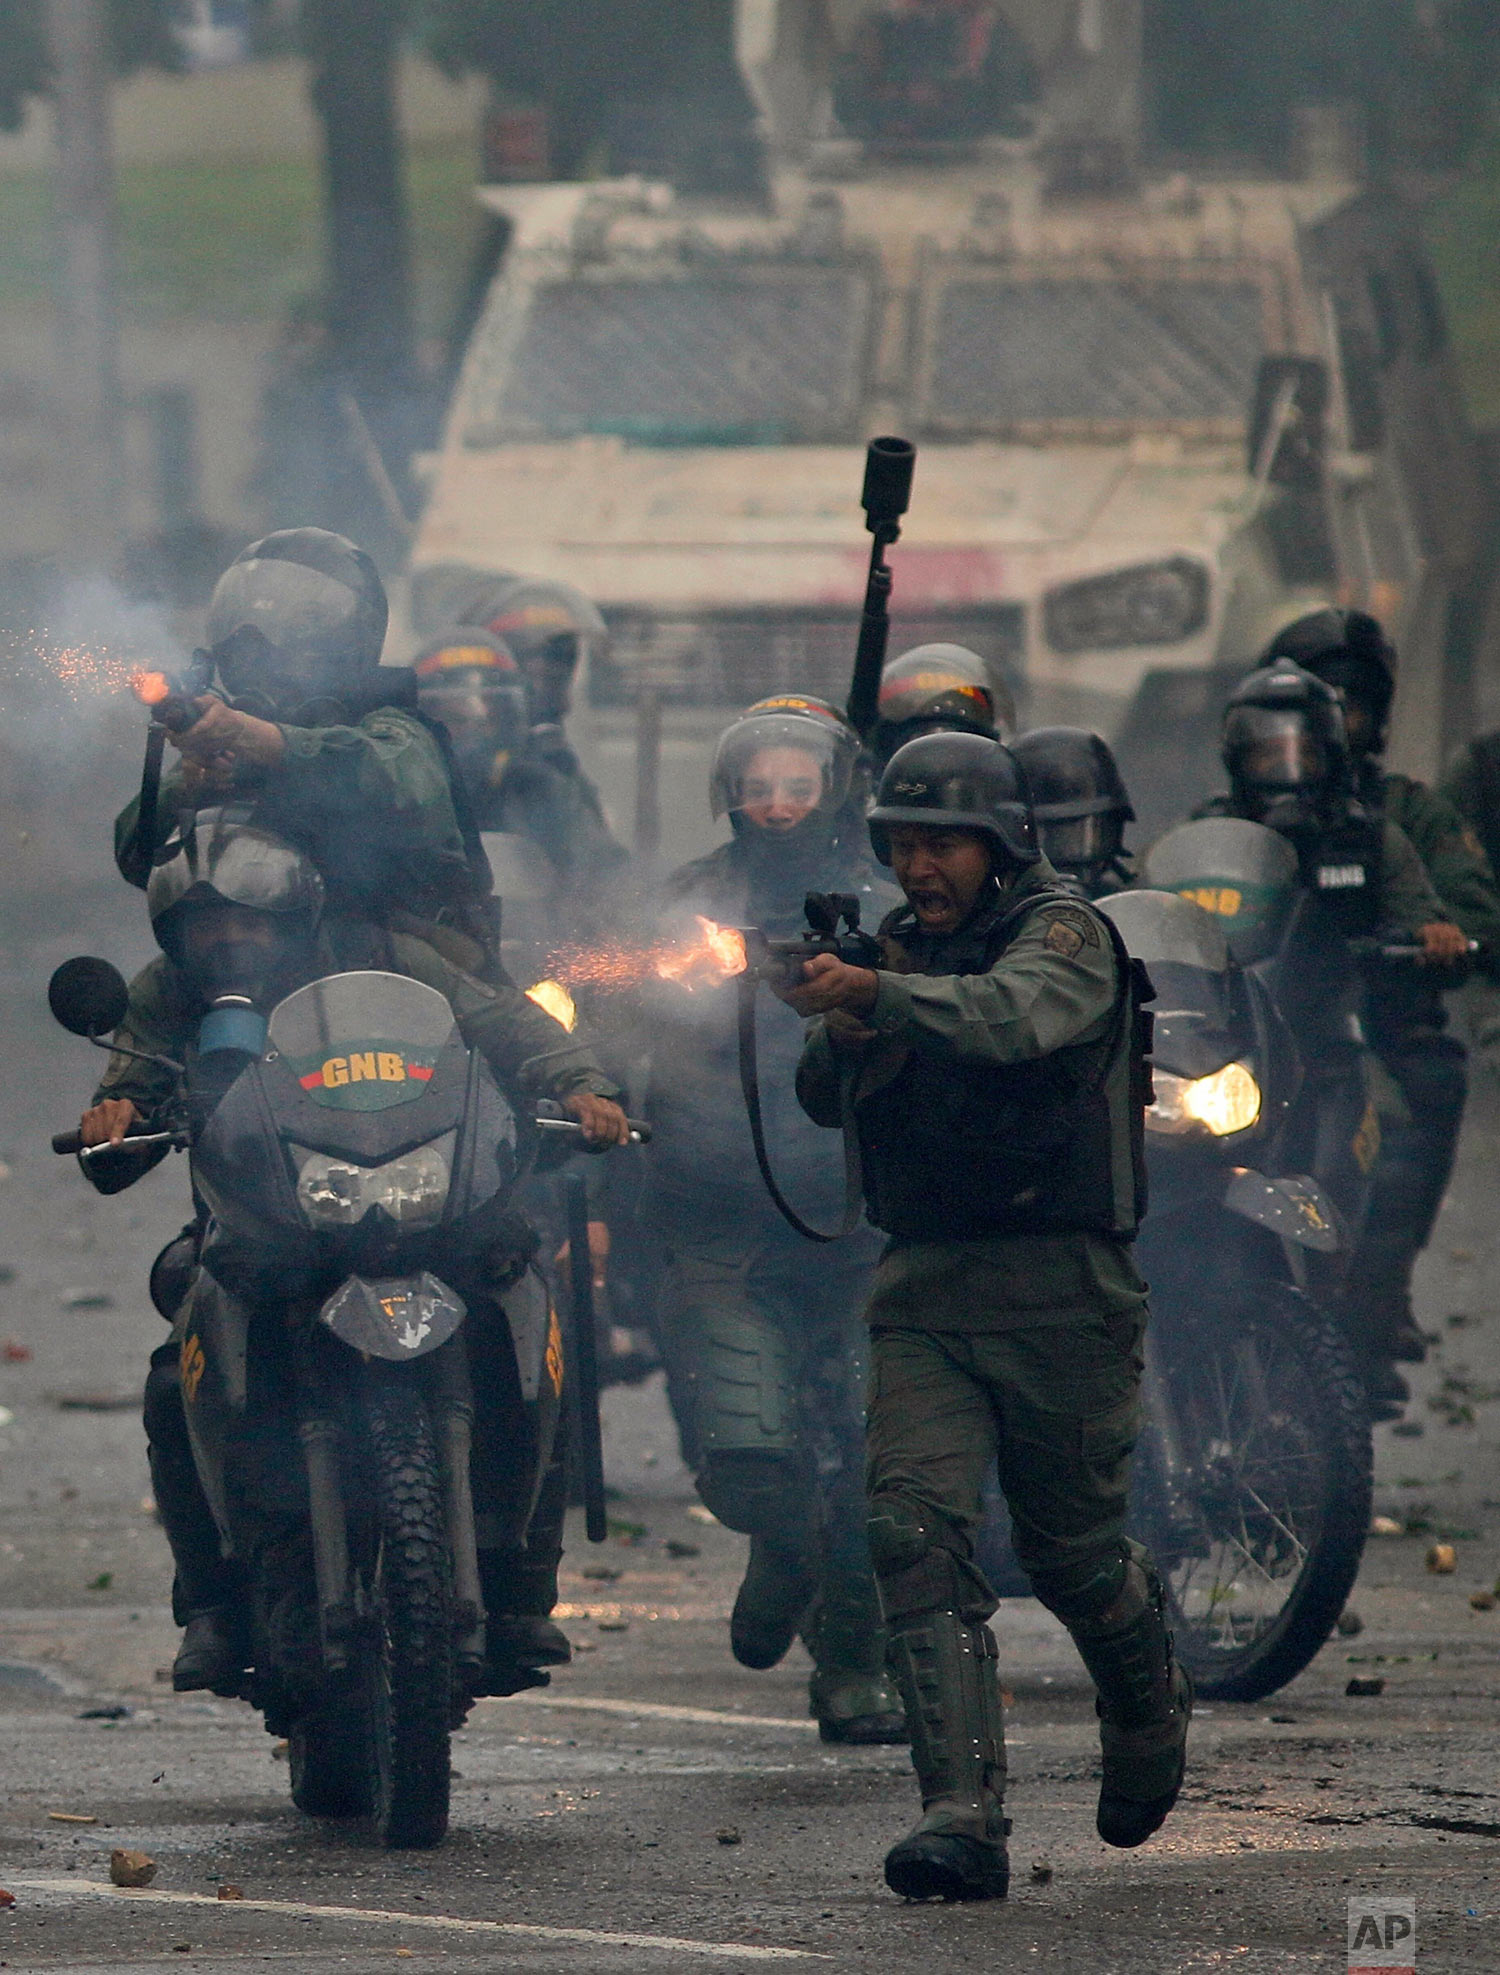 """Bolivarian National Guards fire rubber bullets as they charge anti-government demonstrators in Caracas, Venezuela, Friday, July 28, 2017, two days before the vote to begin the rewriting of Venezuela's constitution. President Nicolas Maduro said the new constitutional assembly's first task in rewriting the constitution would be """"a total transformation"""" of the office of Venezuela's chief prosecutor, a former government loyalist who split from the president. (AP Photo/Ariana Cubillos)"""